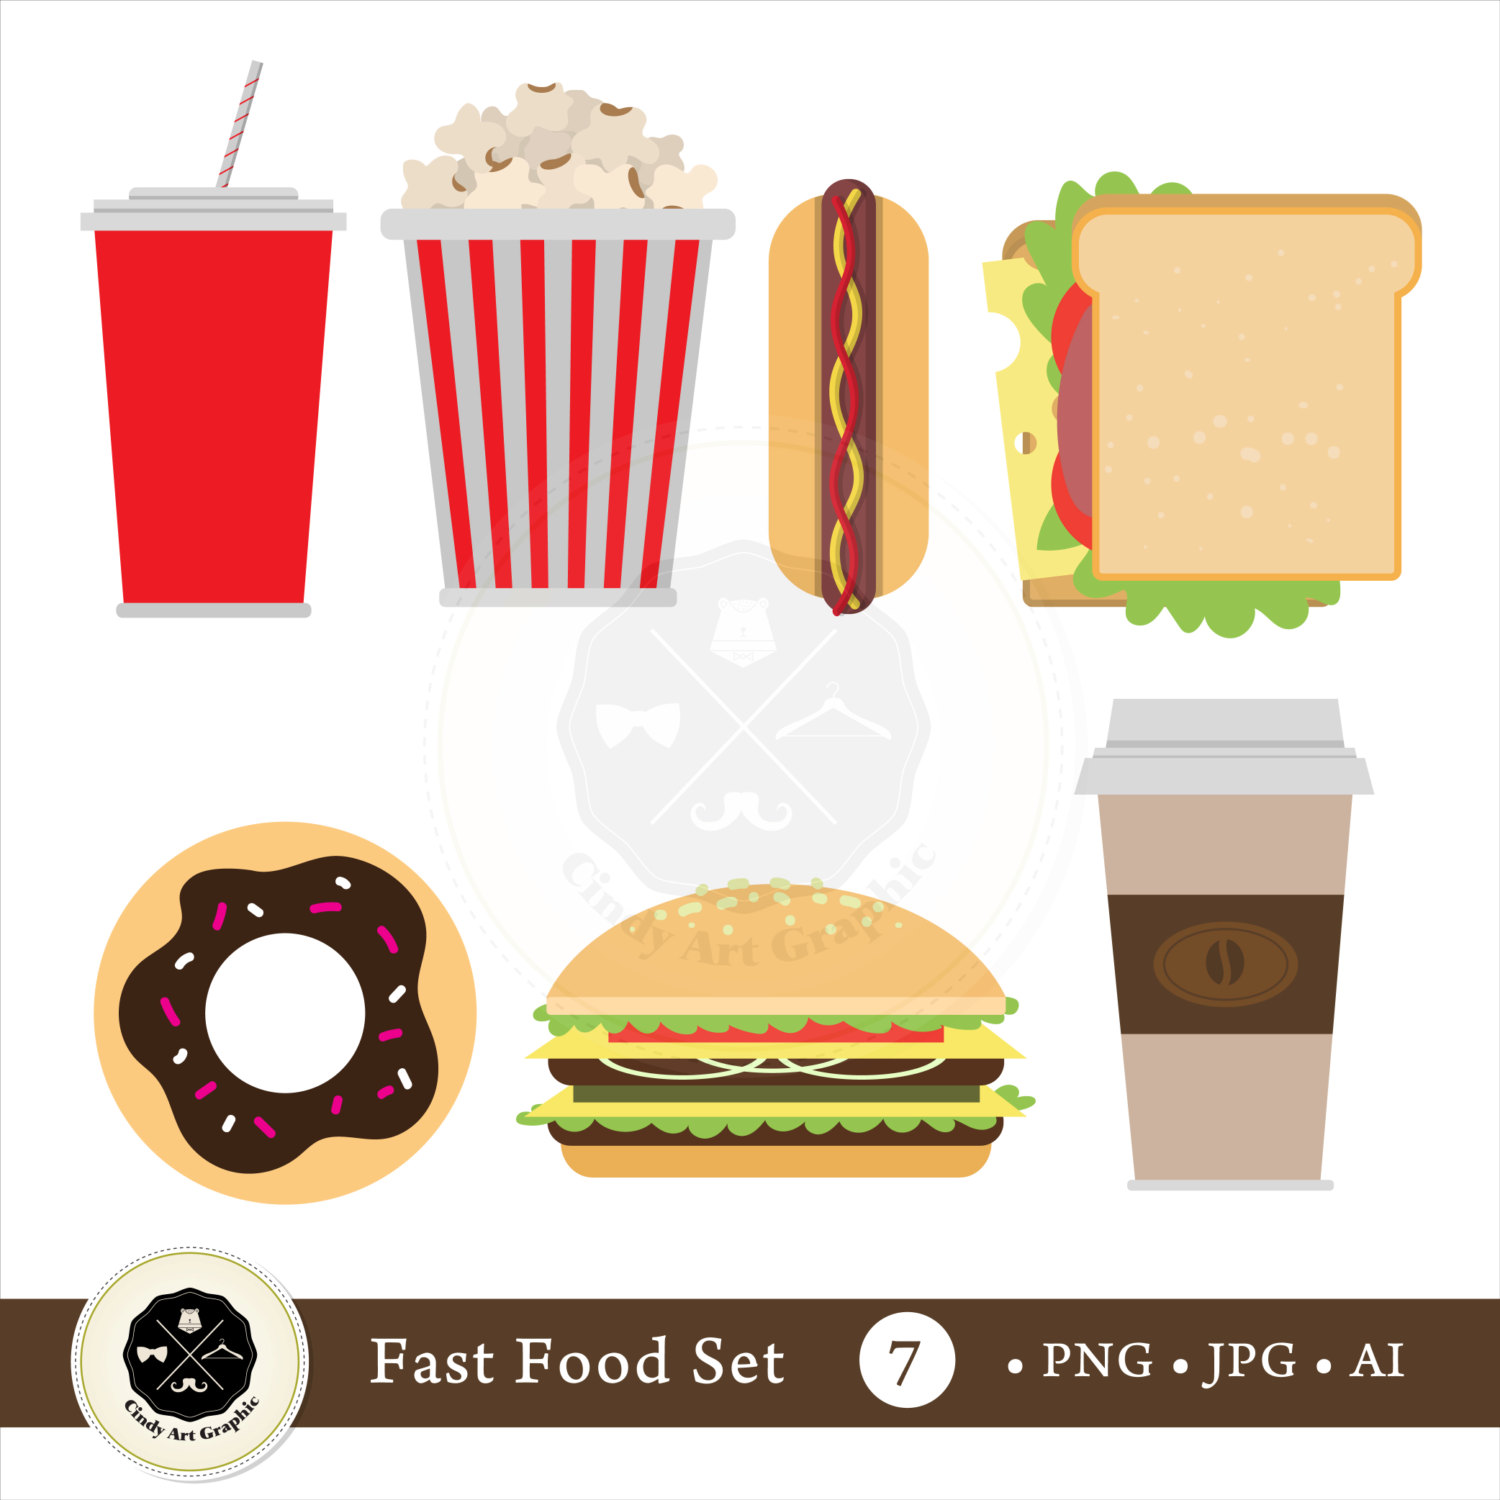 Drink clipart fast food Fast Set food clipart